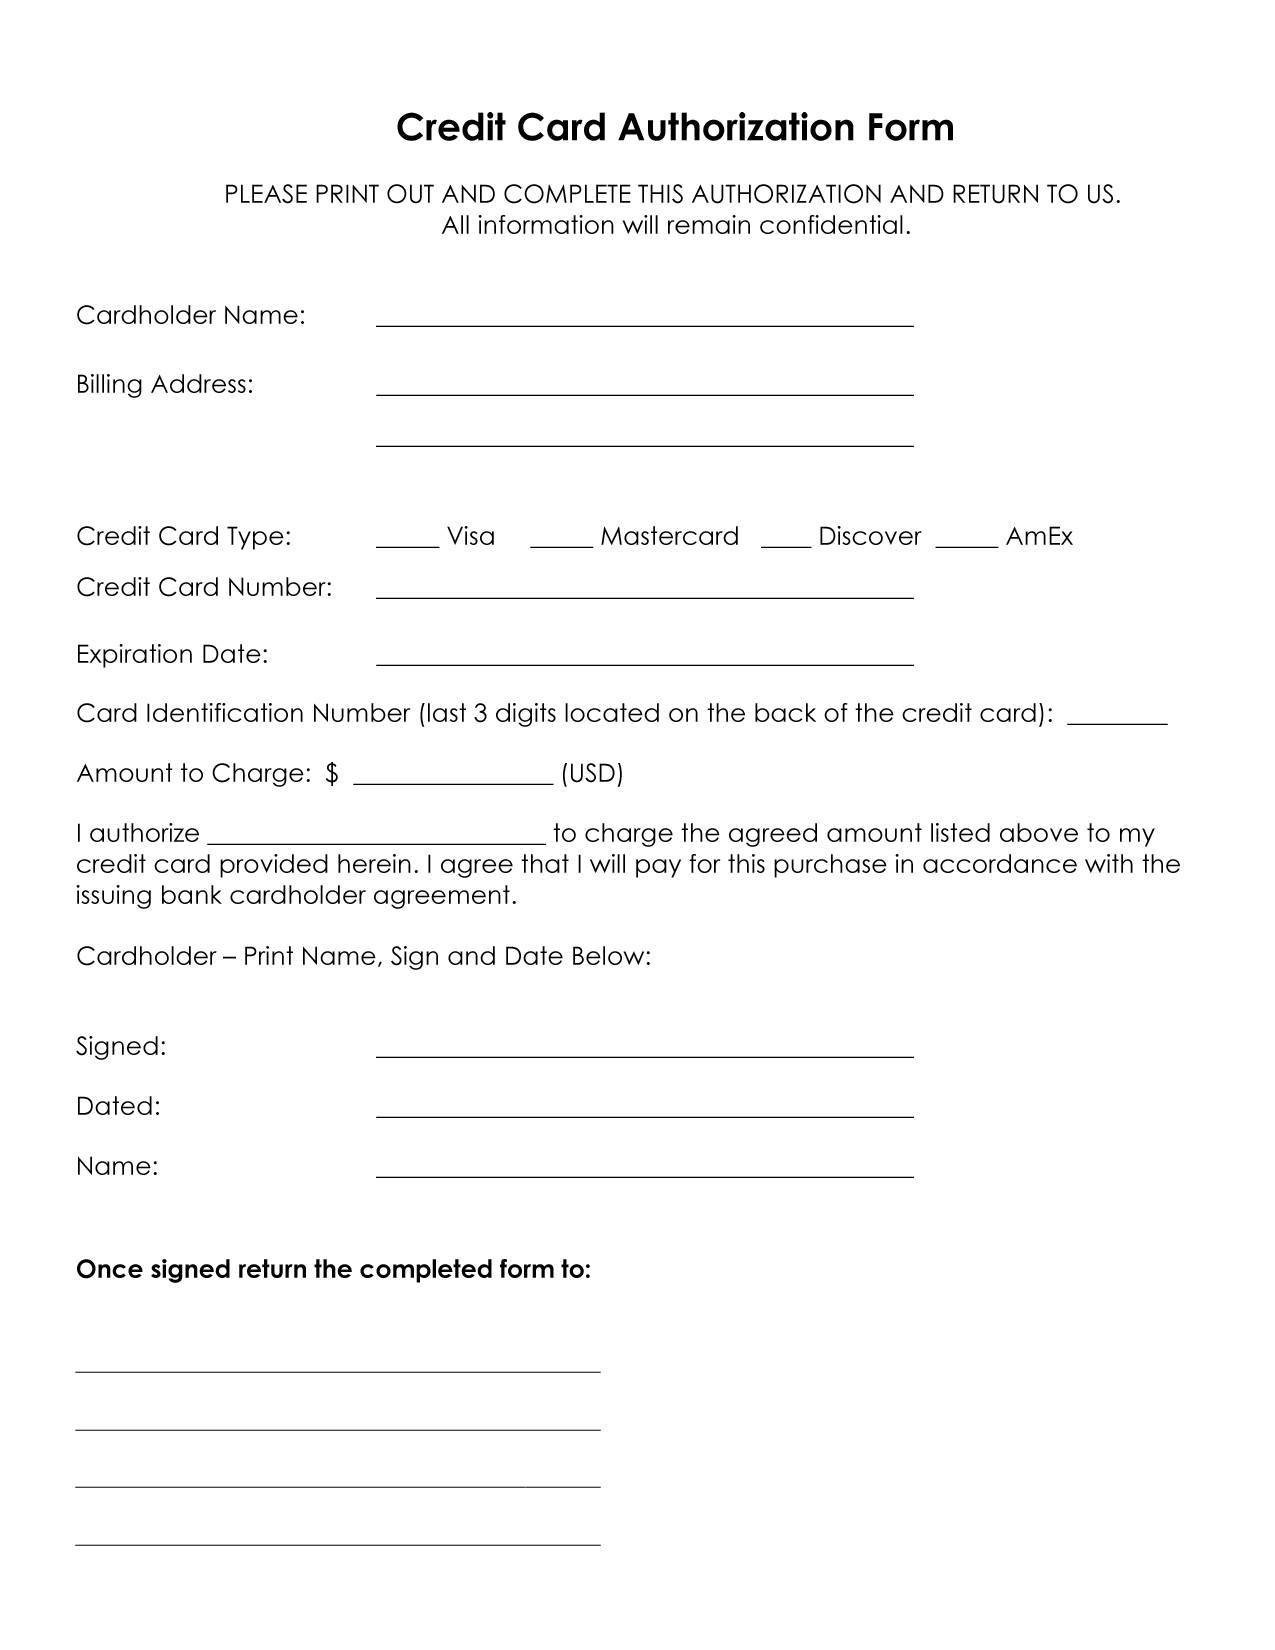 Credit Card Authorization Template Authorization for Credit Card Use Free forms Download